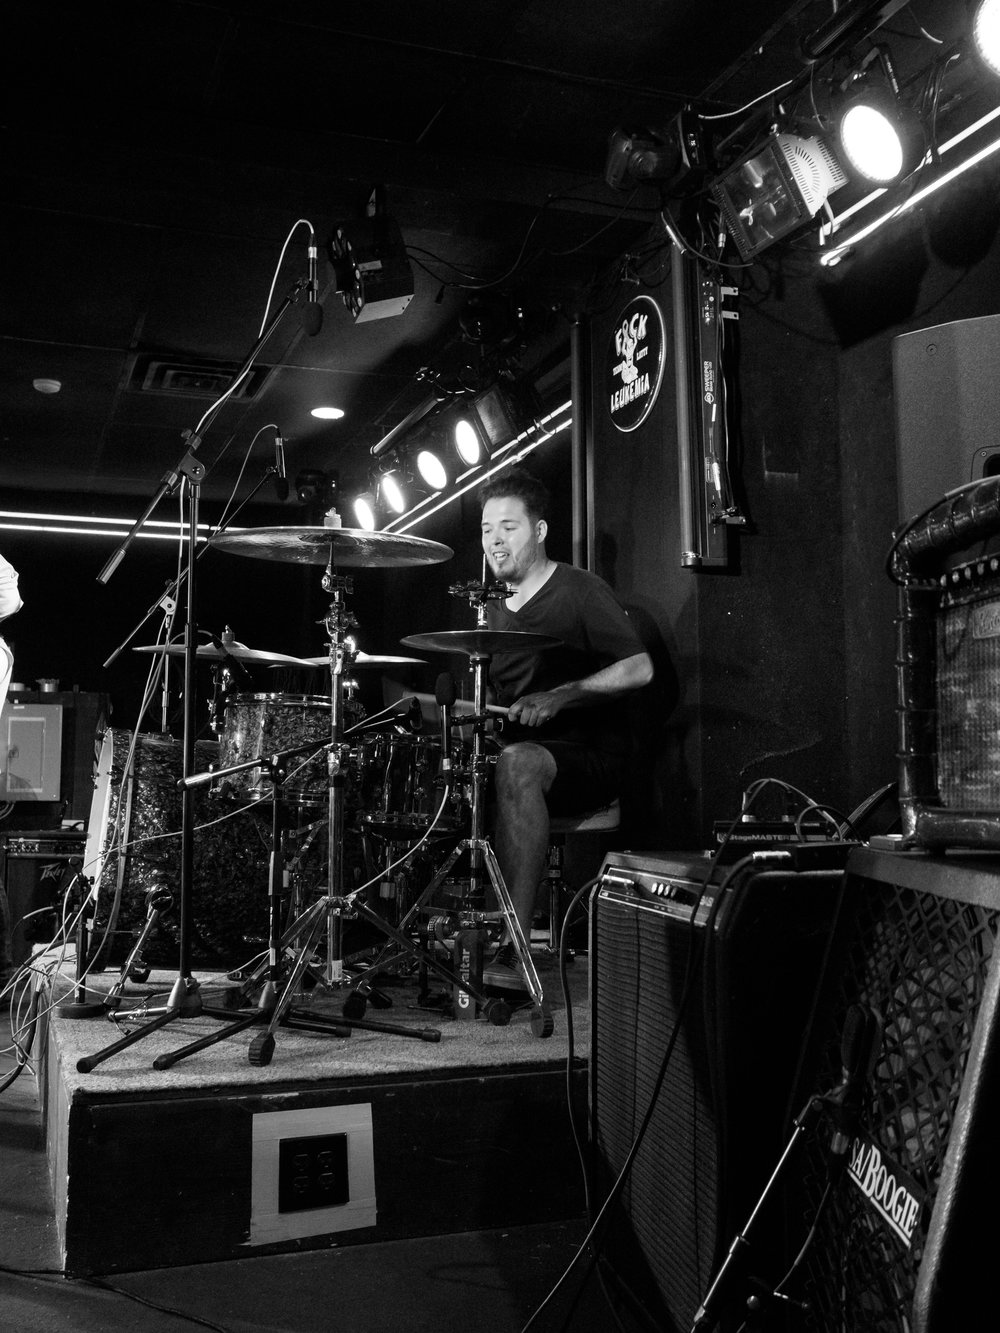 17-06-10_Concert_at_the_Foundry_6100110.JPG